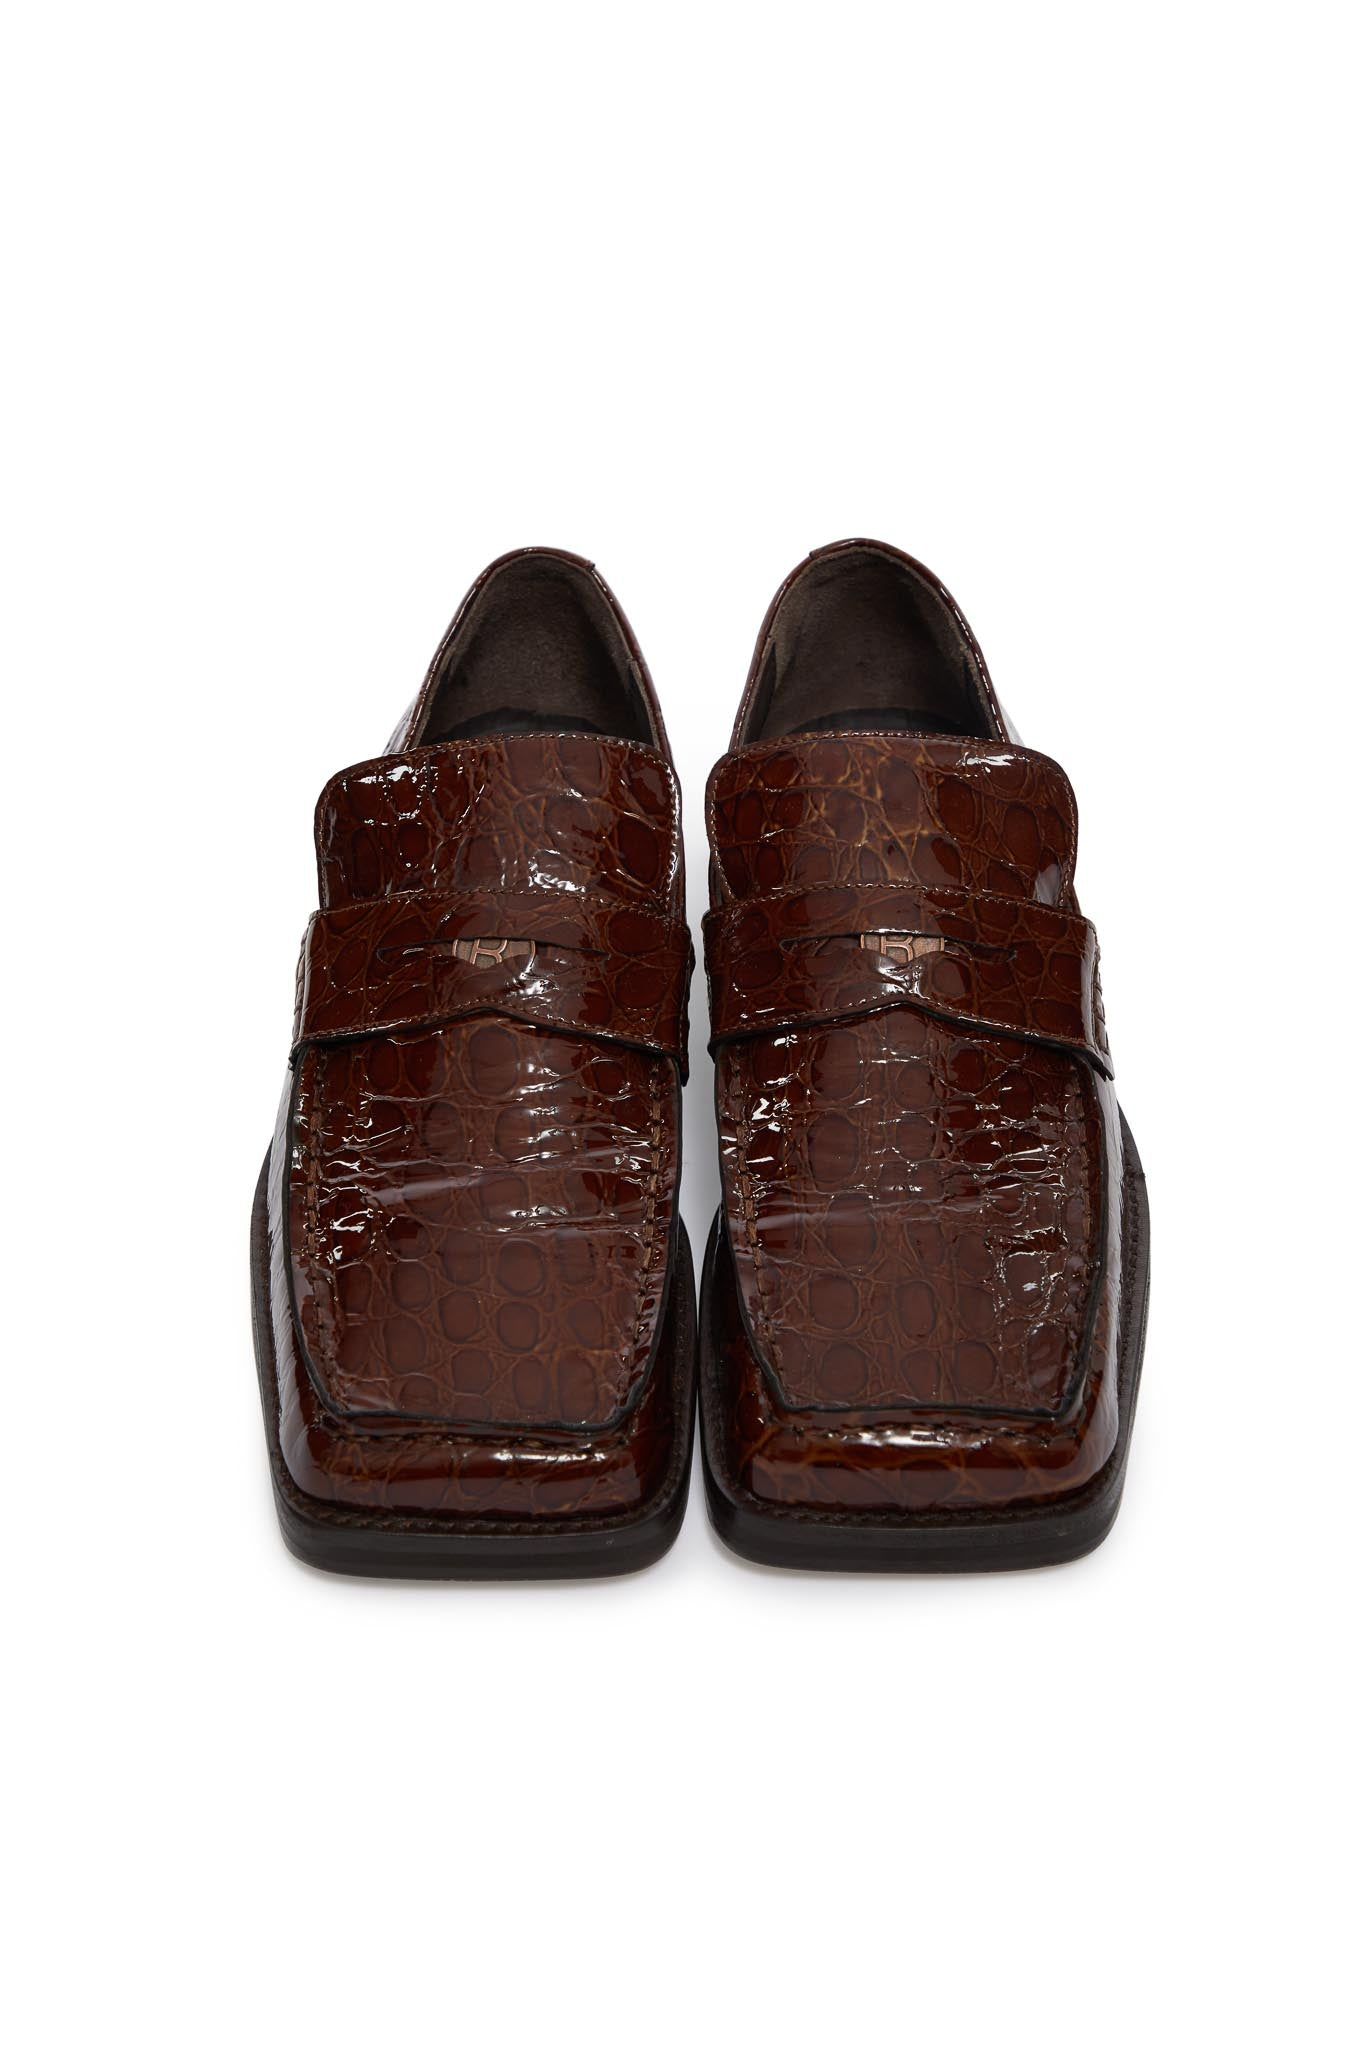 martine rose, roxy m crocodile loafer, BROWN, FMROMRXY1051A8, SHOES, AW20, LEATHER, LOAFER, MENS, SHOES